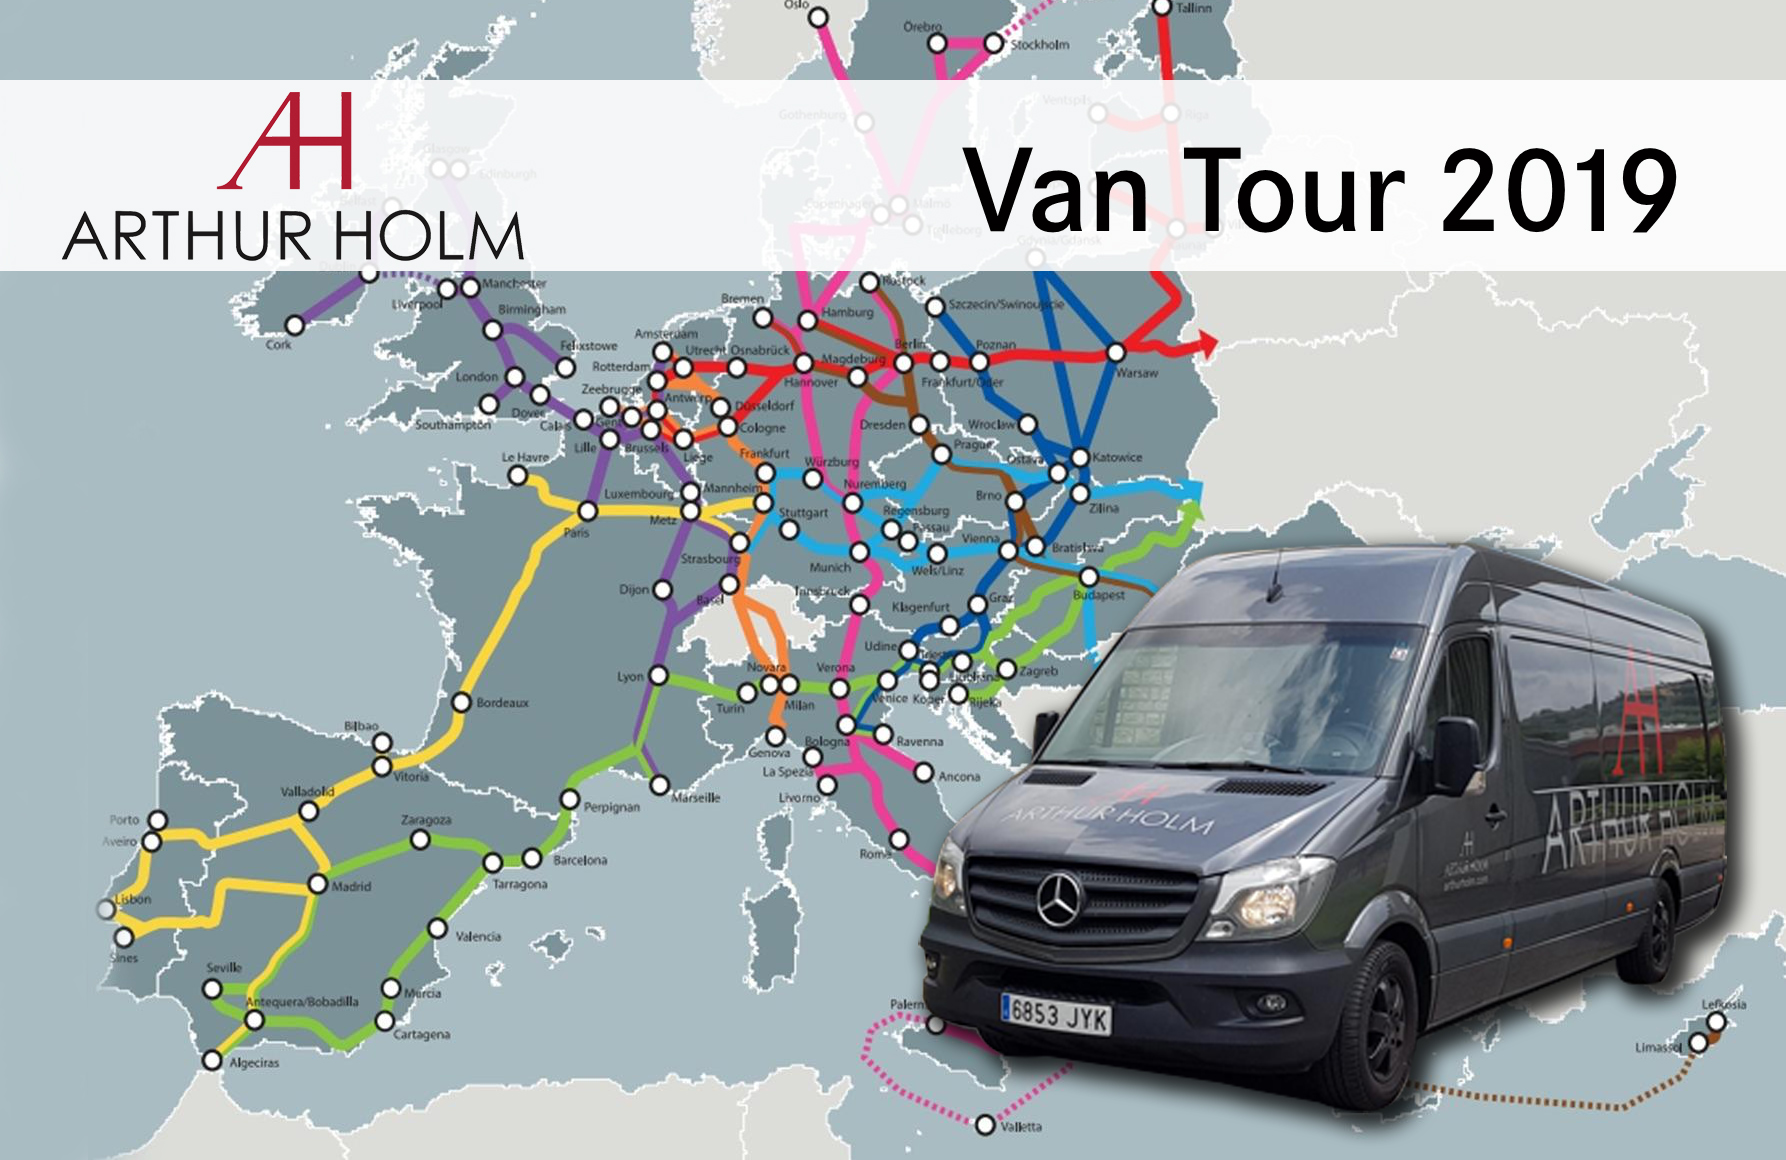 Experience Arthur Holm live, the Van Tour 2019 is already in motion!